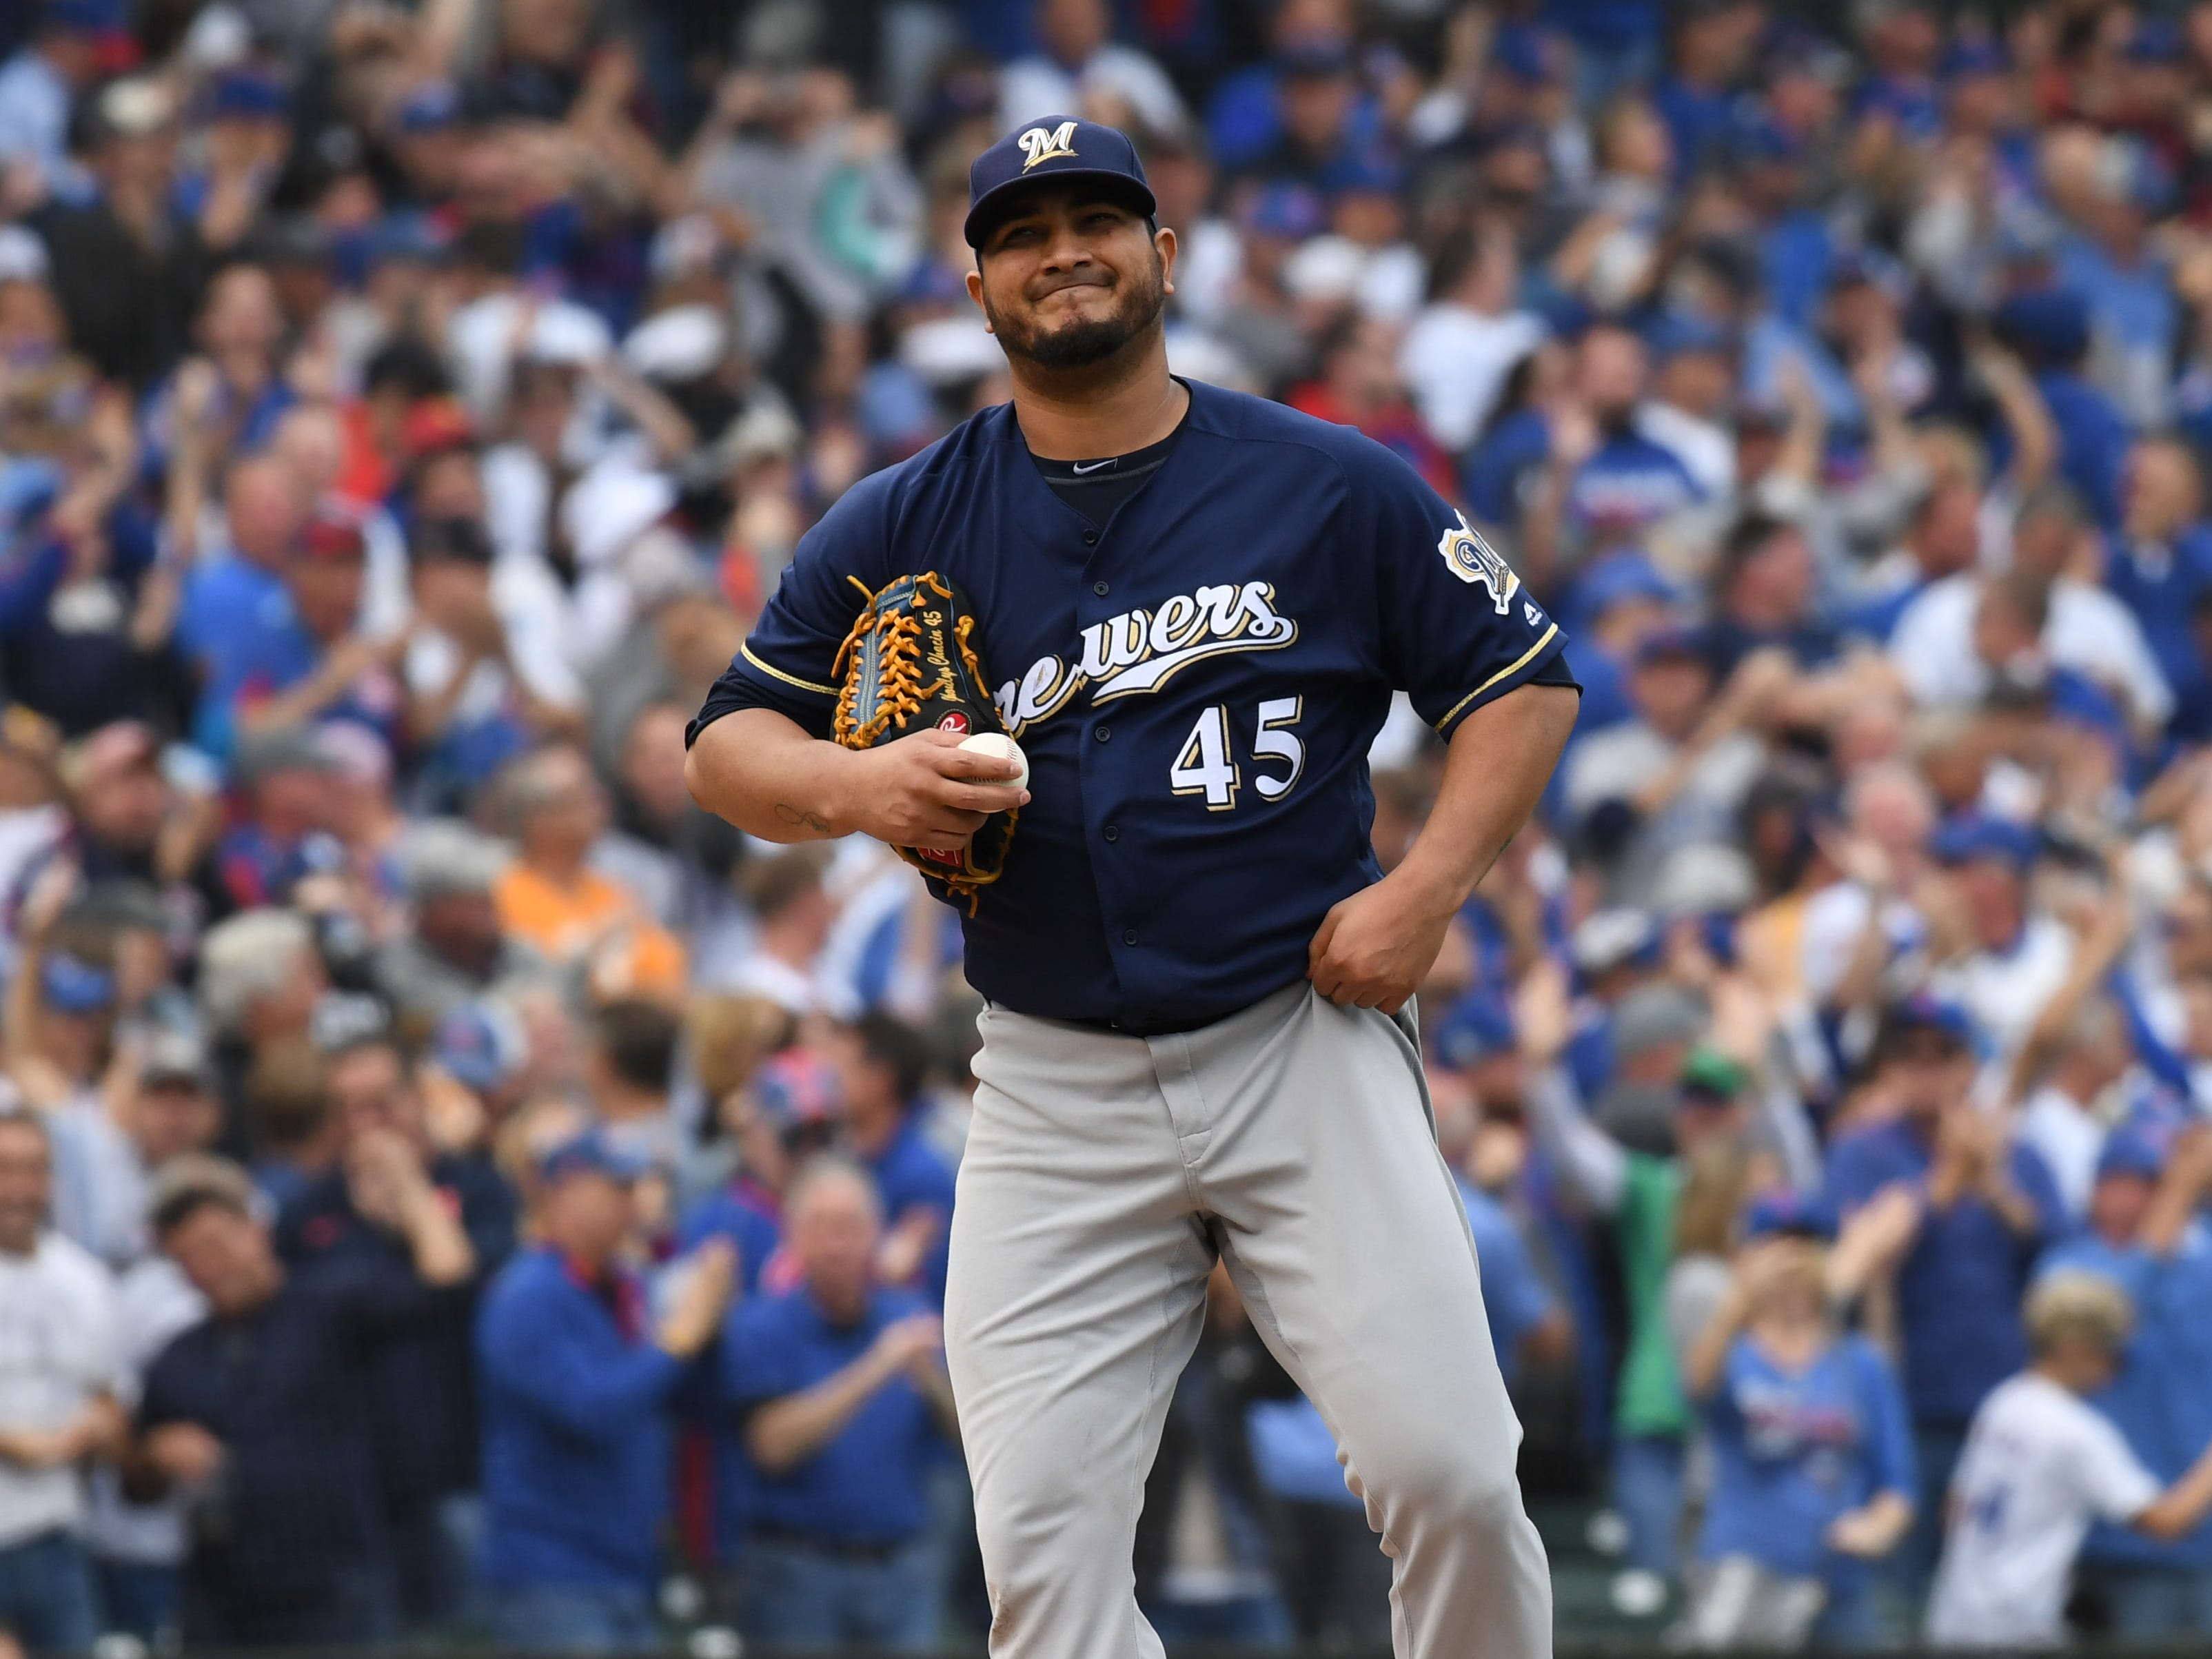 Brewers starter Jhoulys Chacin reacts after giving up a home run to Anthony Rizzo in the fifth.